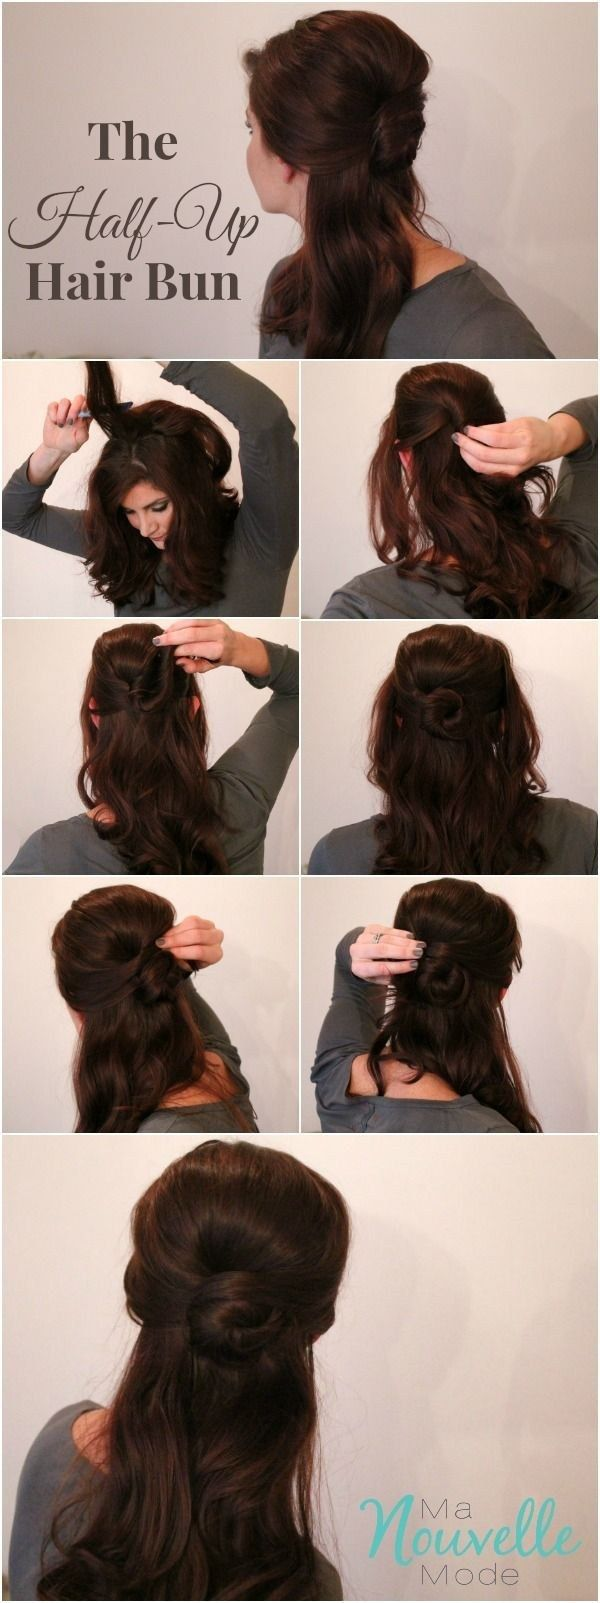 Belle's elegant half-up bun | Community Post: 7 Easy Hair Tutorials Even Disney Princesses Would Envy :probably the best half bun i saw